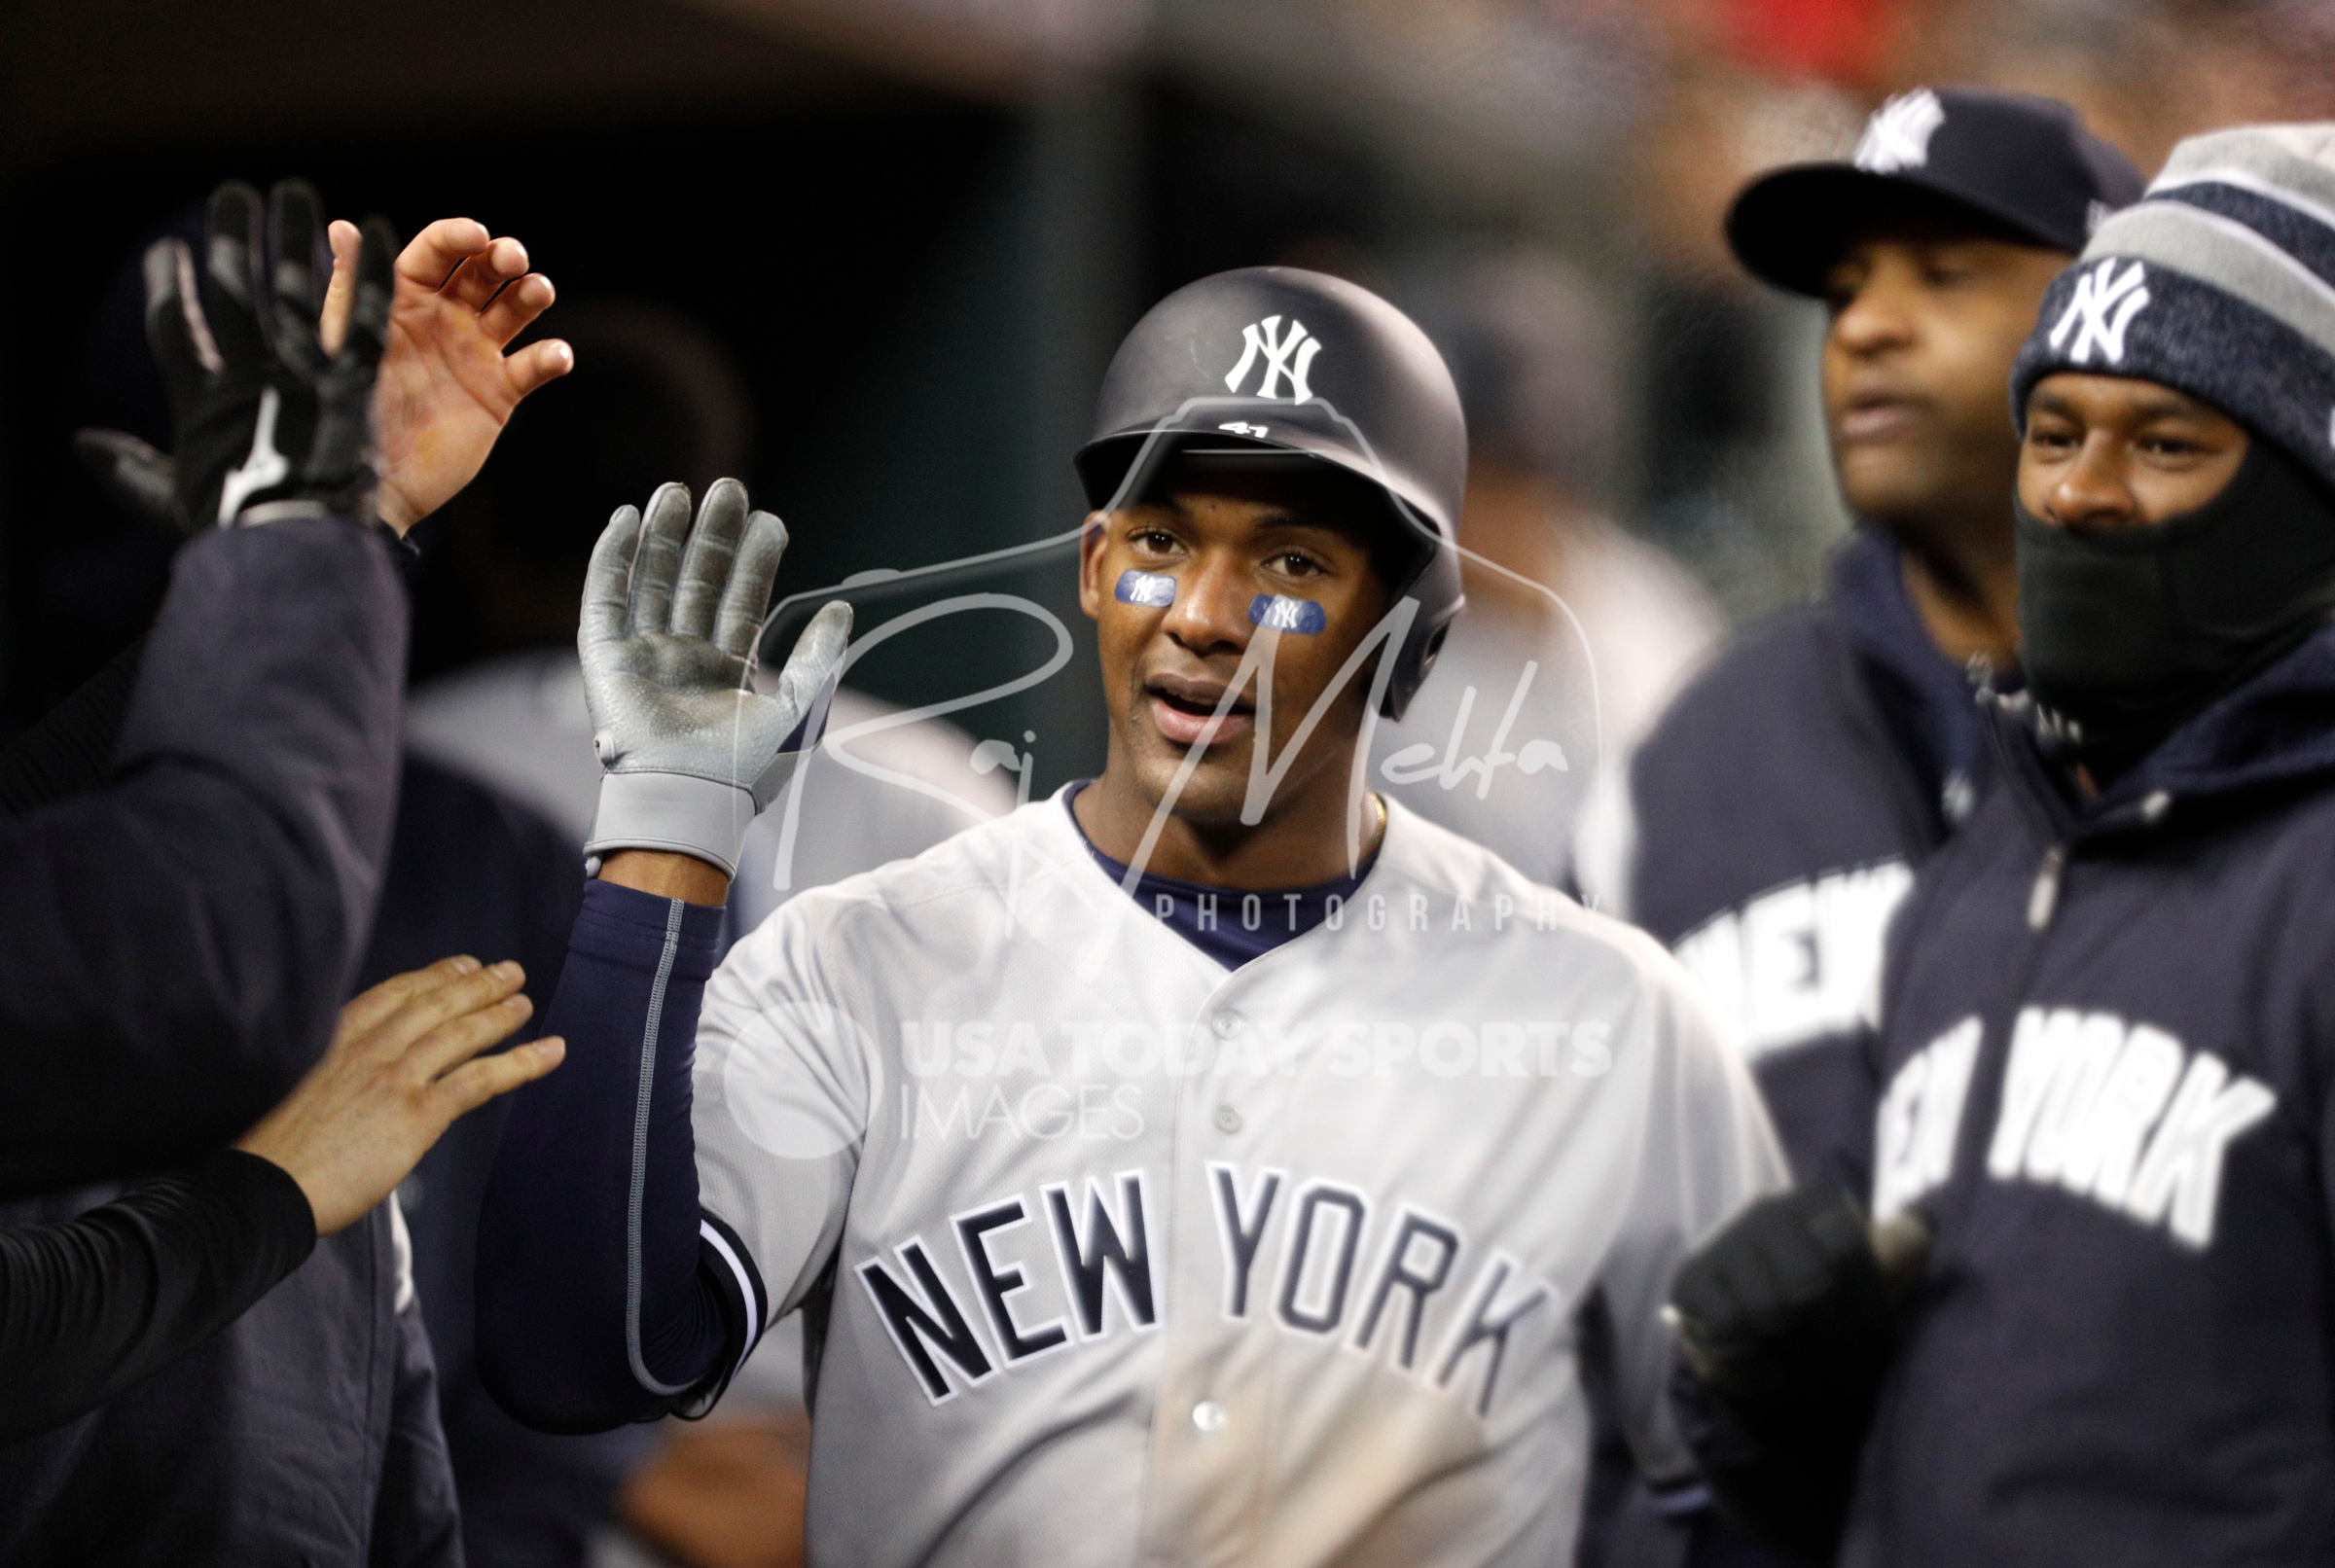 Apr 13, 2018; Detroit, MI, USA; New York Yankees third baseman Miguel Andujar (41) celebrates with teammates after scoring a run during the eighth inning against the Detroit Tigers at Comerica Park. Mandatory Credit: Raj Mehta-USA TODAY Sports